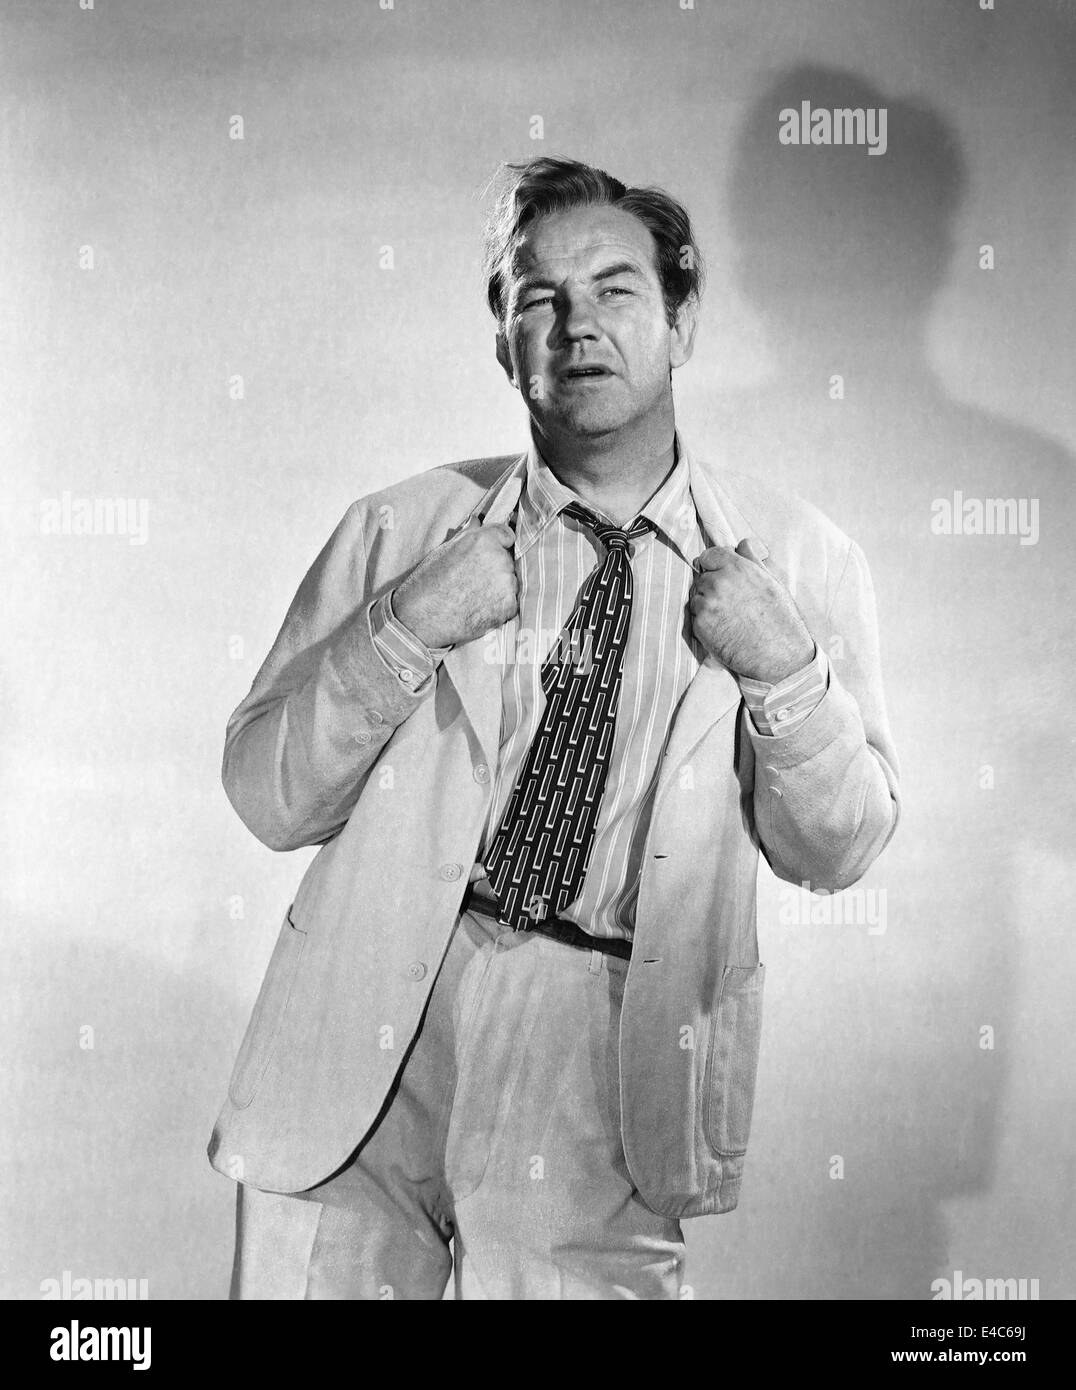 Broderick Crawford, Publicity Portrait, on-set of the Film, 'All the King's Men', 1949 - Stock Image